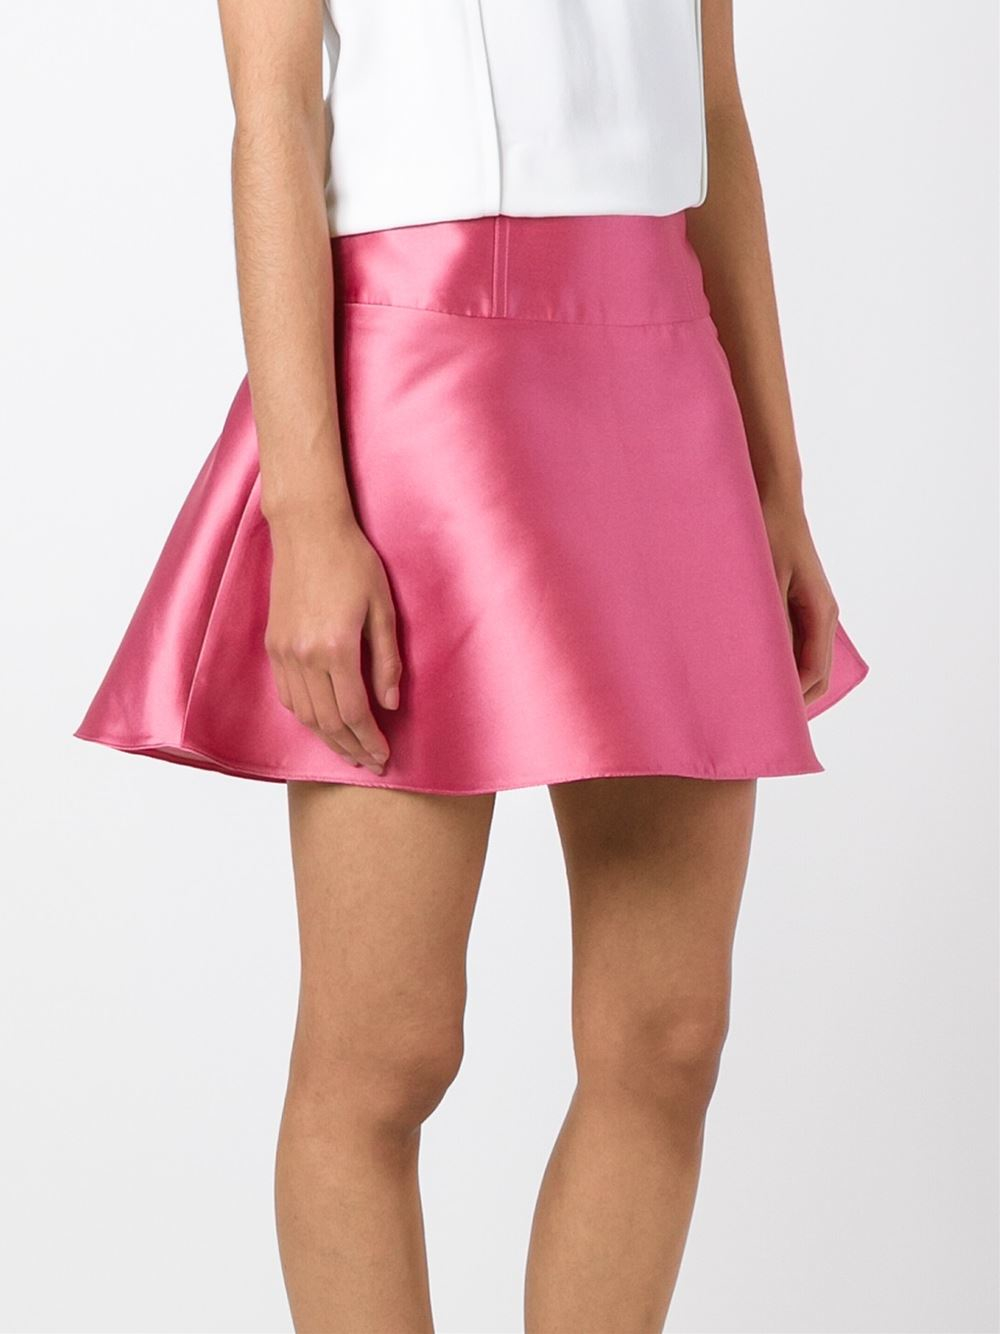 Red valentino Lace Detail Skirt in Pink (PINK & PURPLE) | Lyst